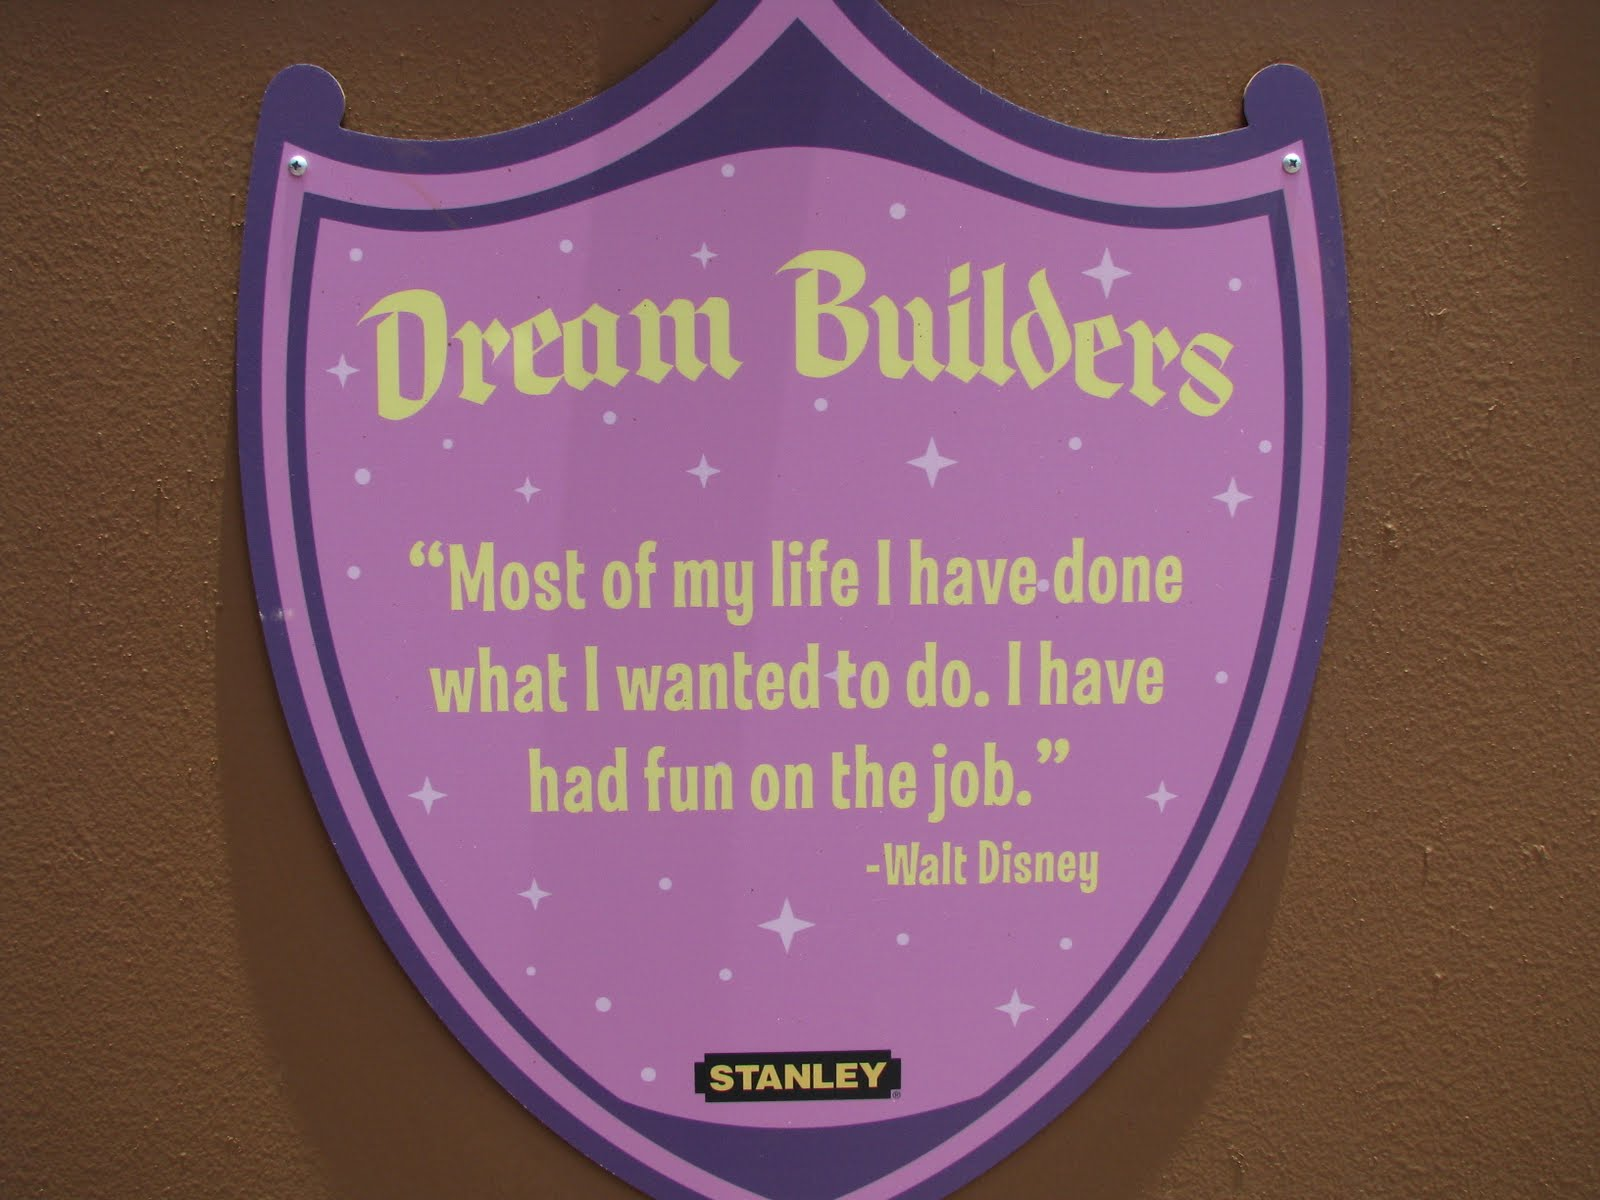 Walt Disney Quotes About Life Quotes From Walt Disney At The Magic Kingdom  Disney World Blog